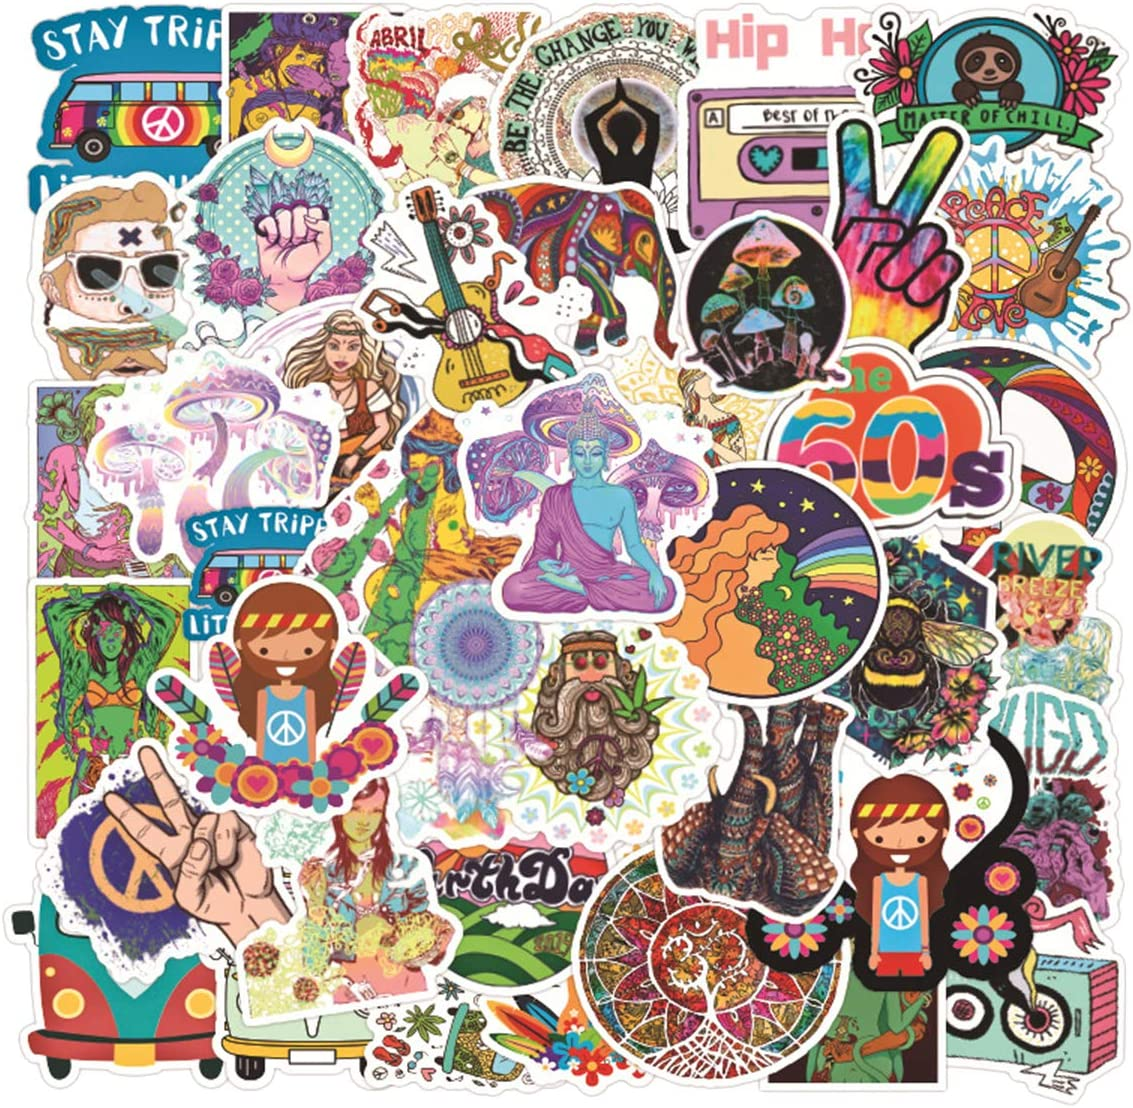 50pcs Hippie Stickers Laptop Adult Sticker Waterproof Stickers Luggage Skateboard Water Bottle Stickers Decal Bicycle Bumper Snowboard Decorate Gift for Kid(Hippie